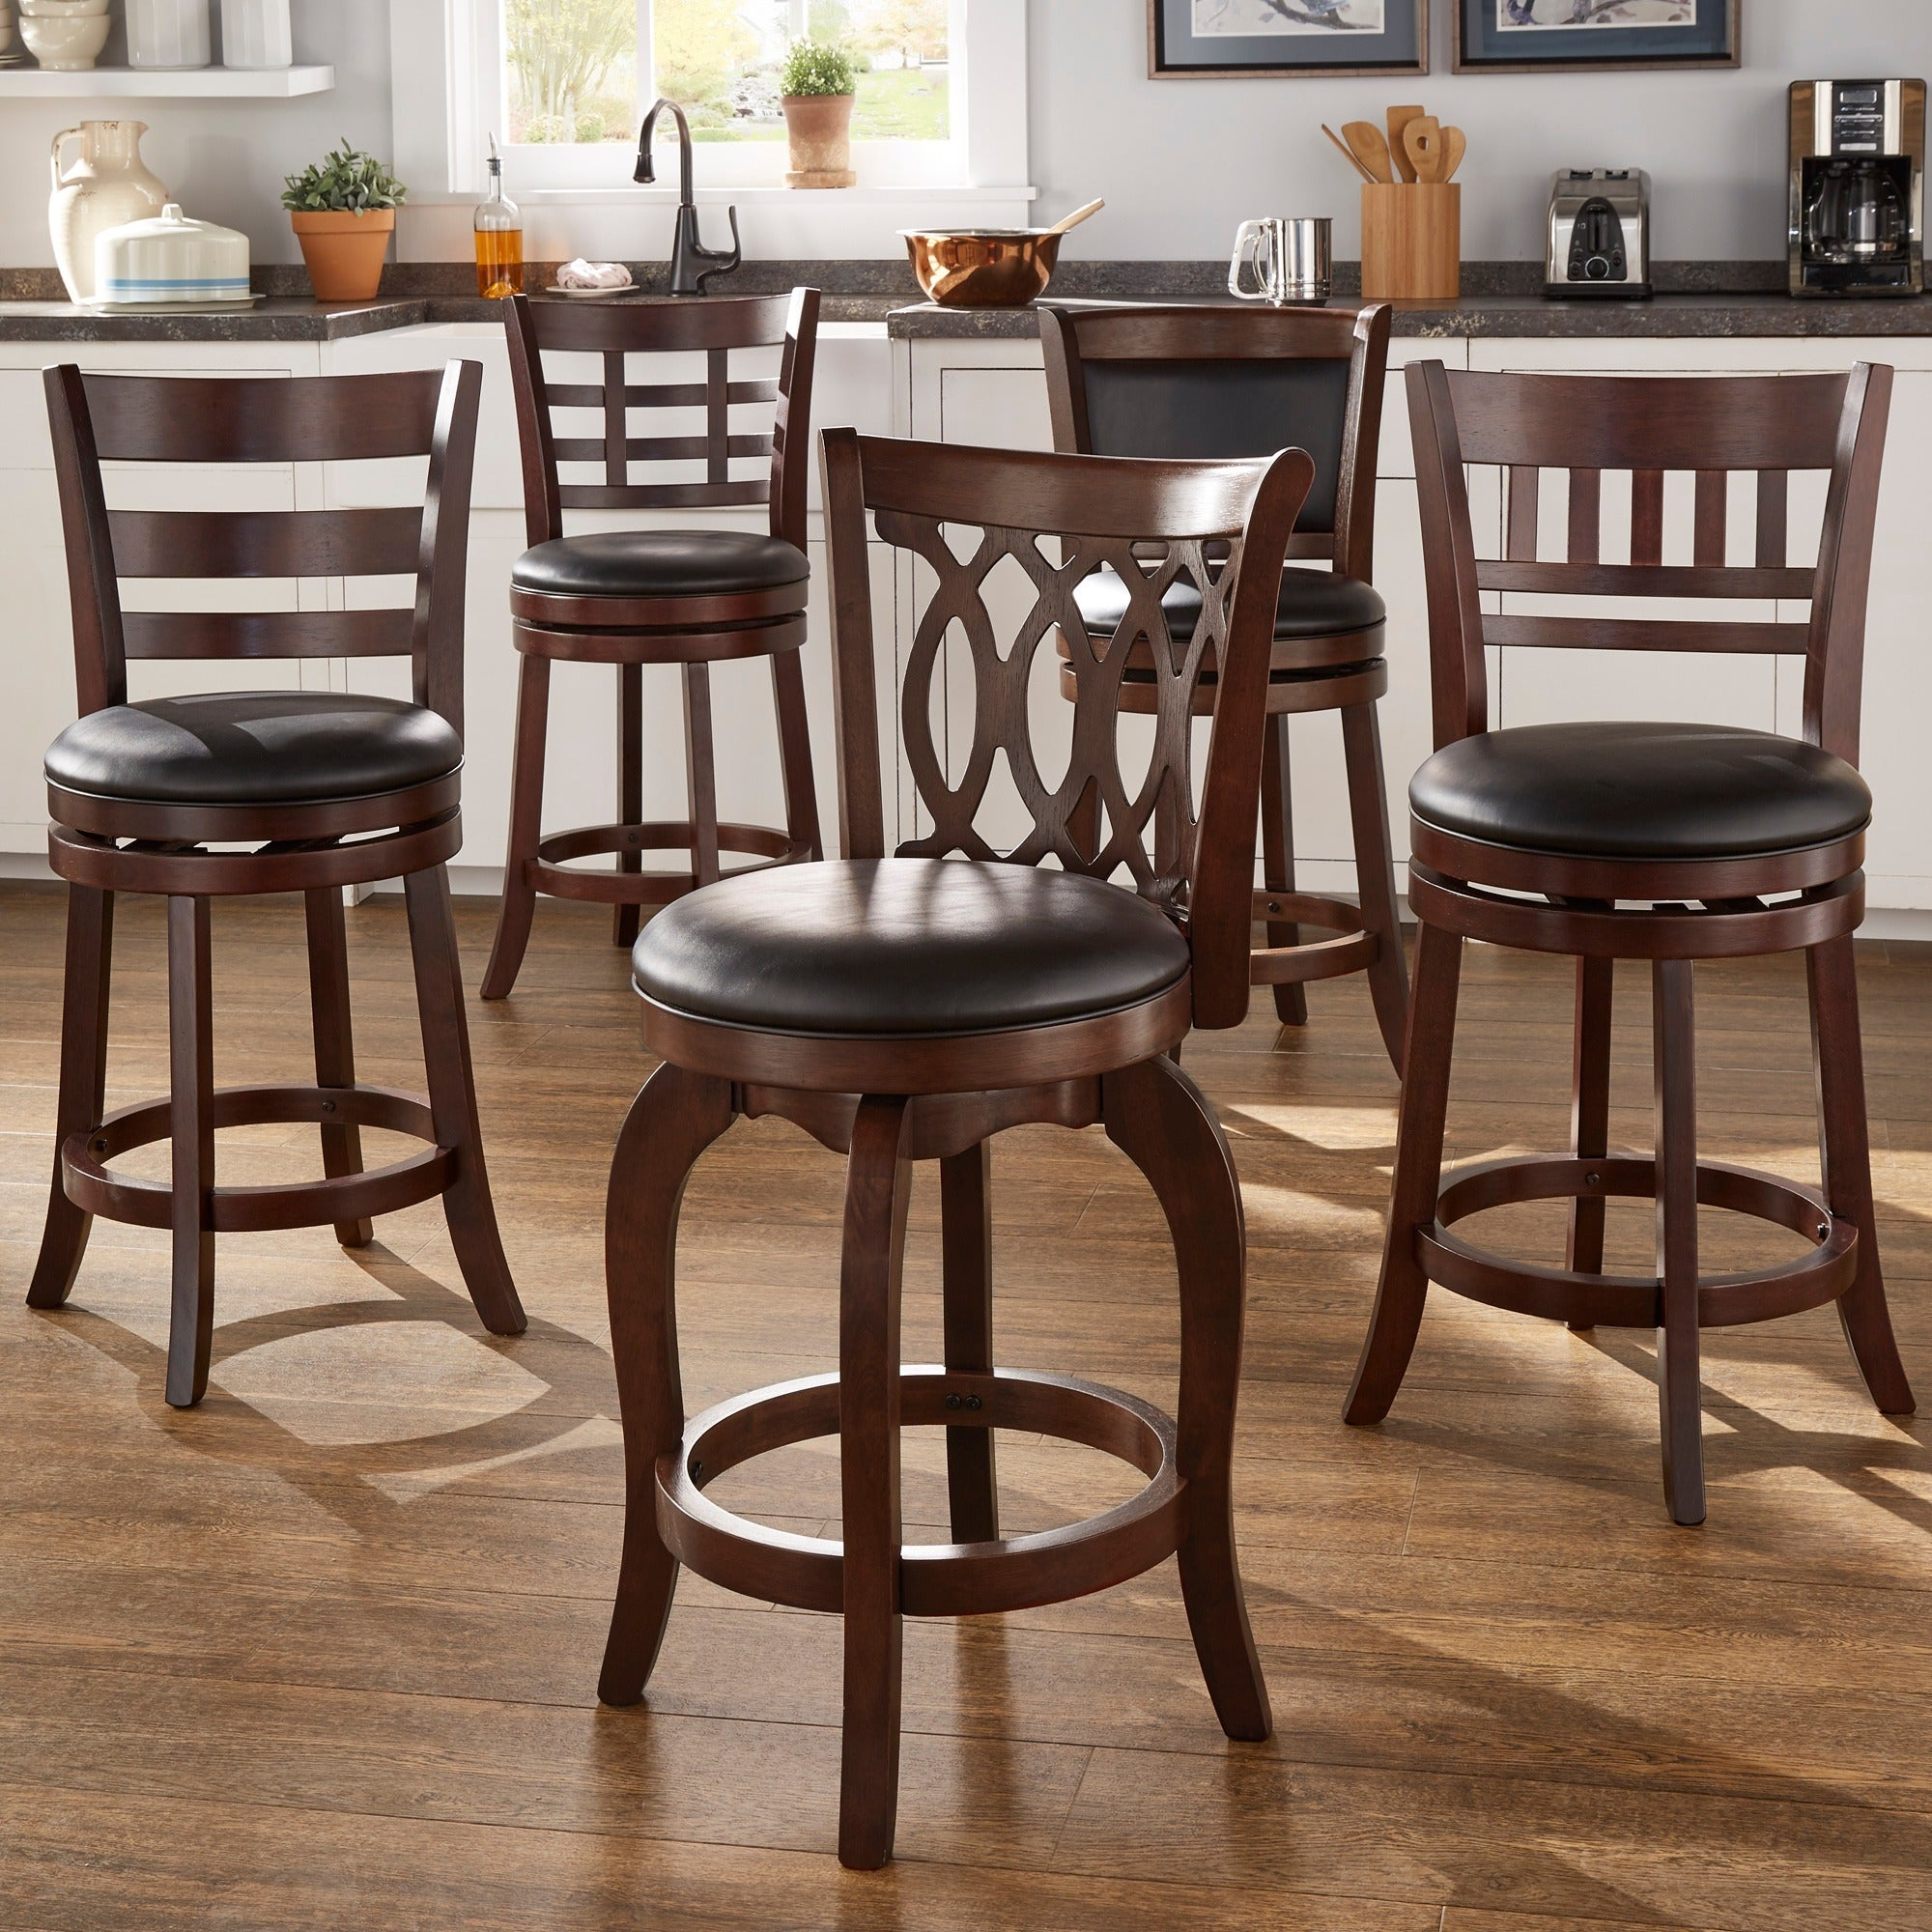 Bar Table And Chairs For Sale: Swivel Bar Stools 24 In Cherry Finish Wood Frame Faux